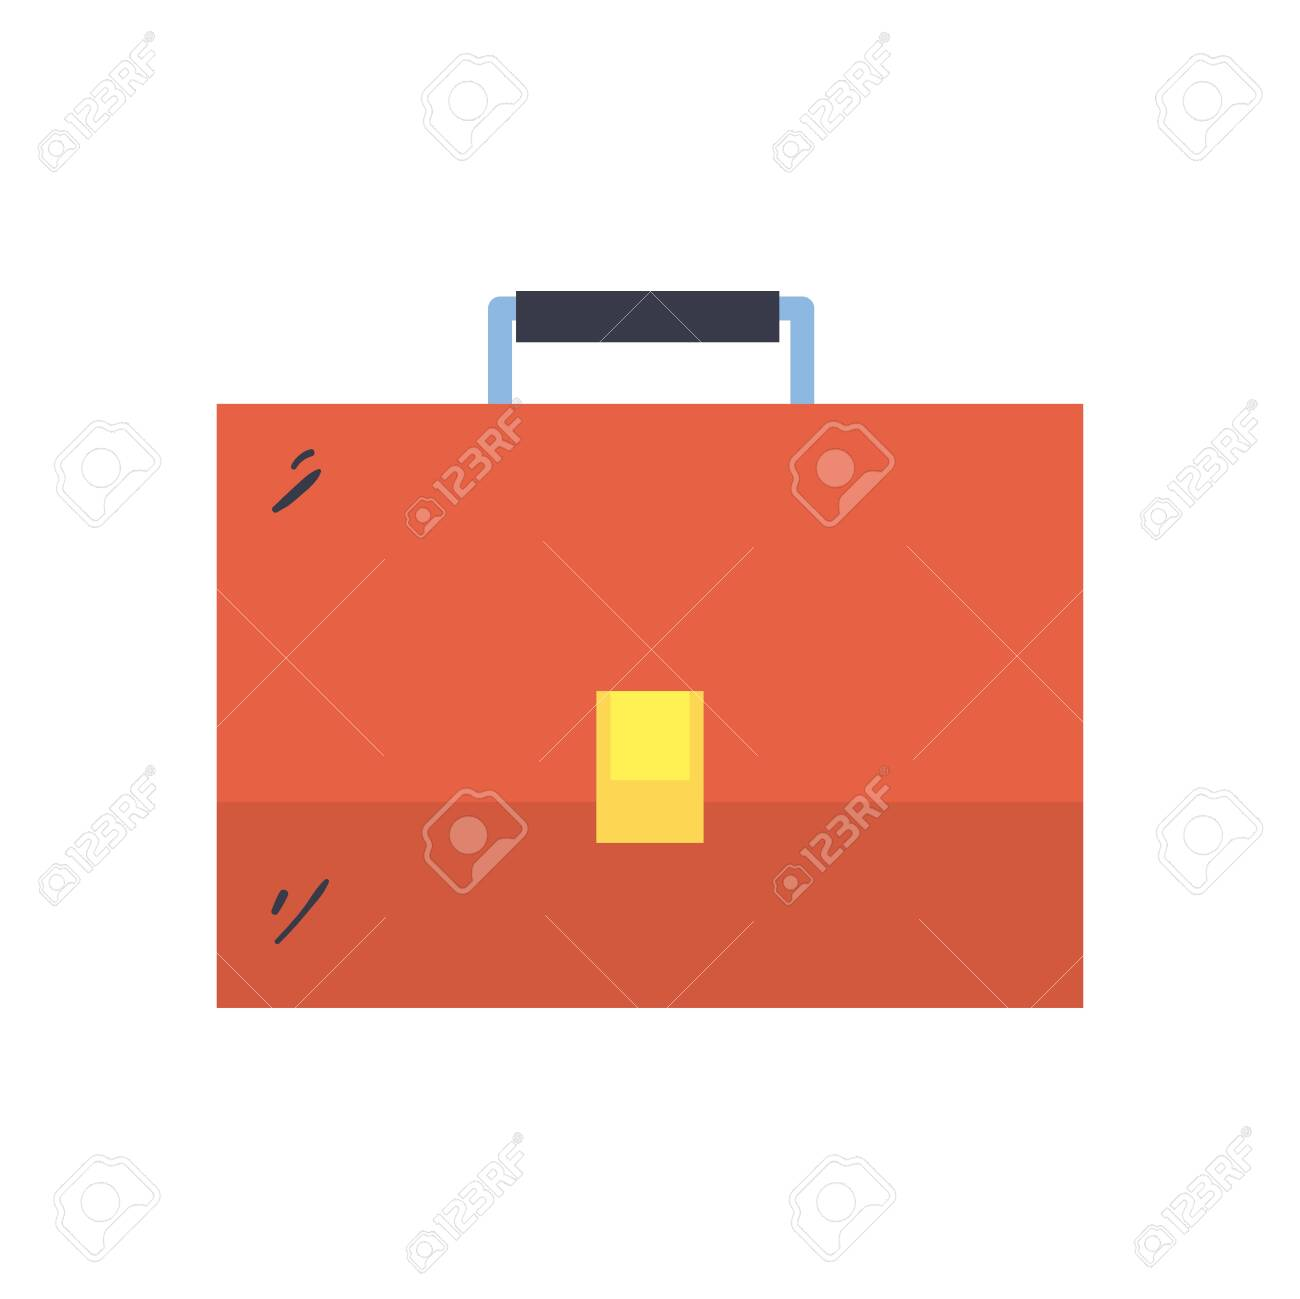 Suitcase bag line and fill style icon design, Case office school university travel baggage luggage handle leather and trip theme Vector illustration - 152777670